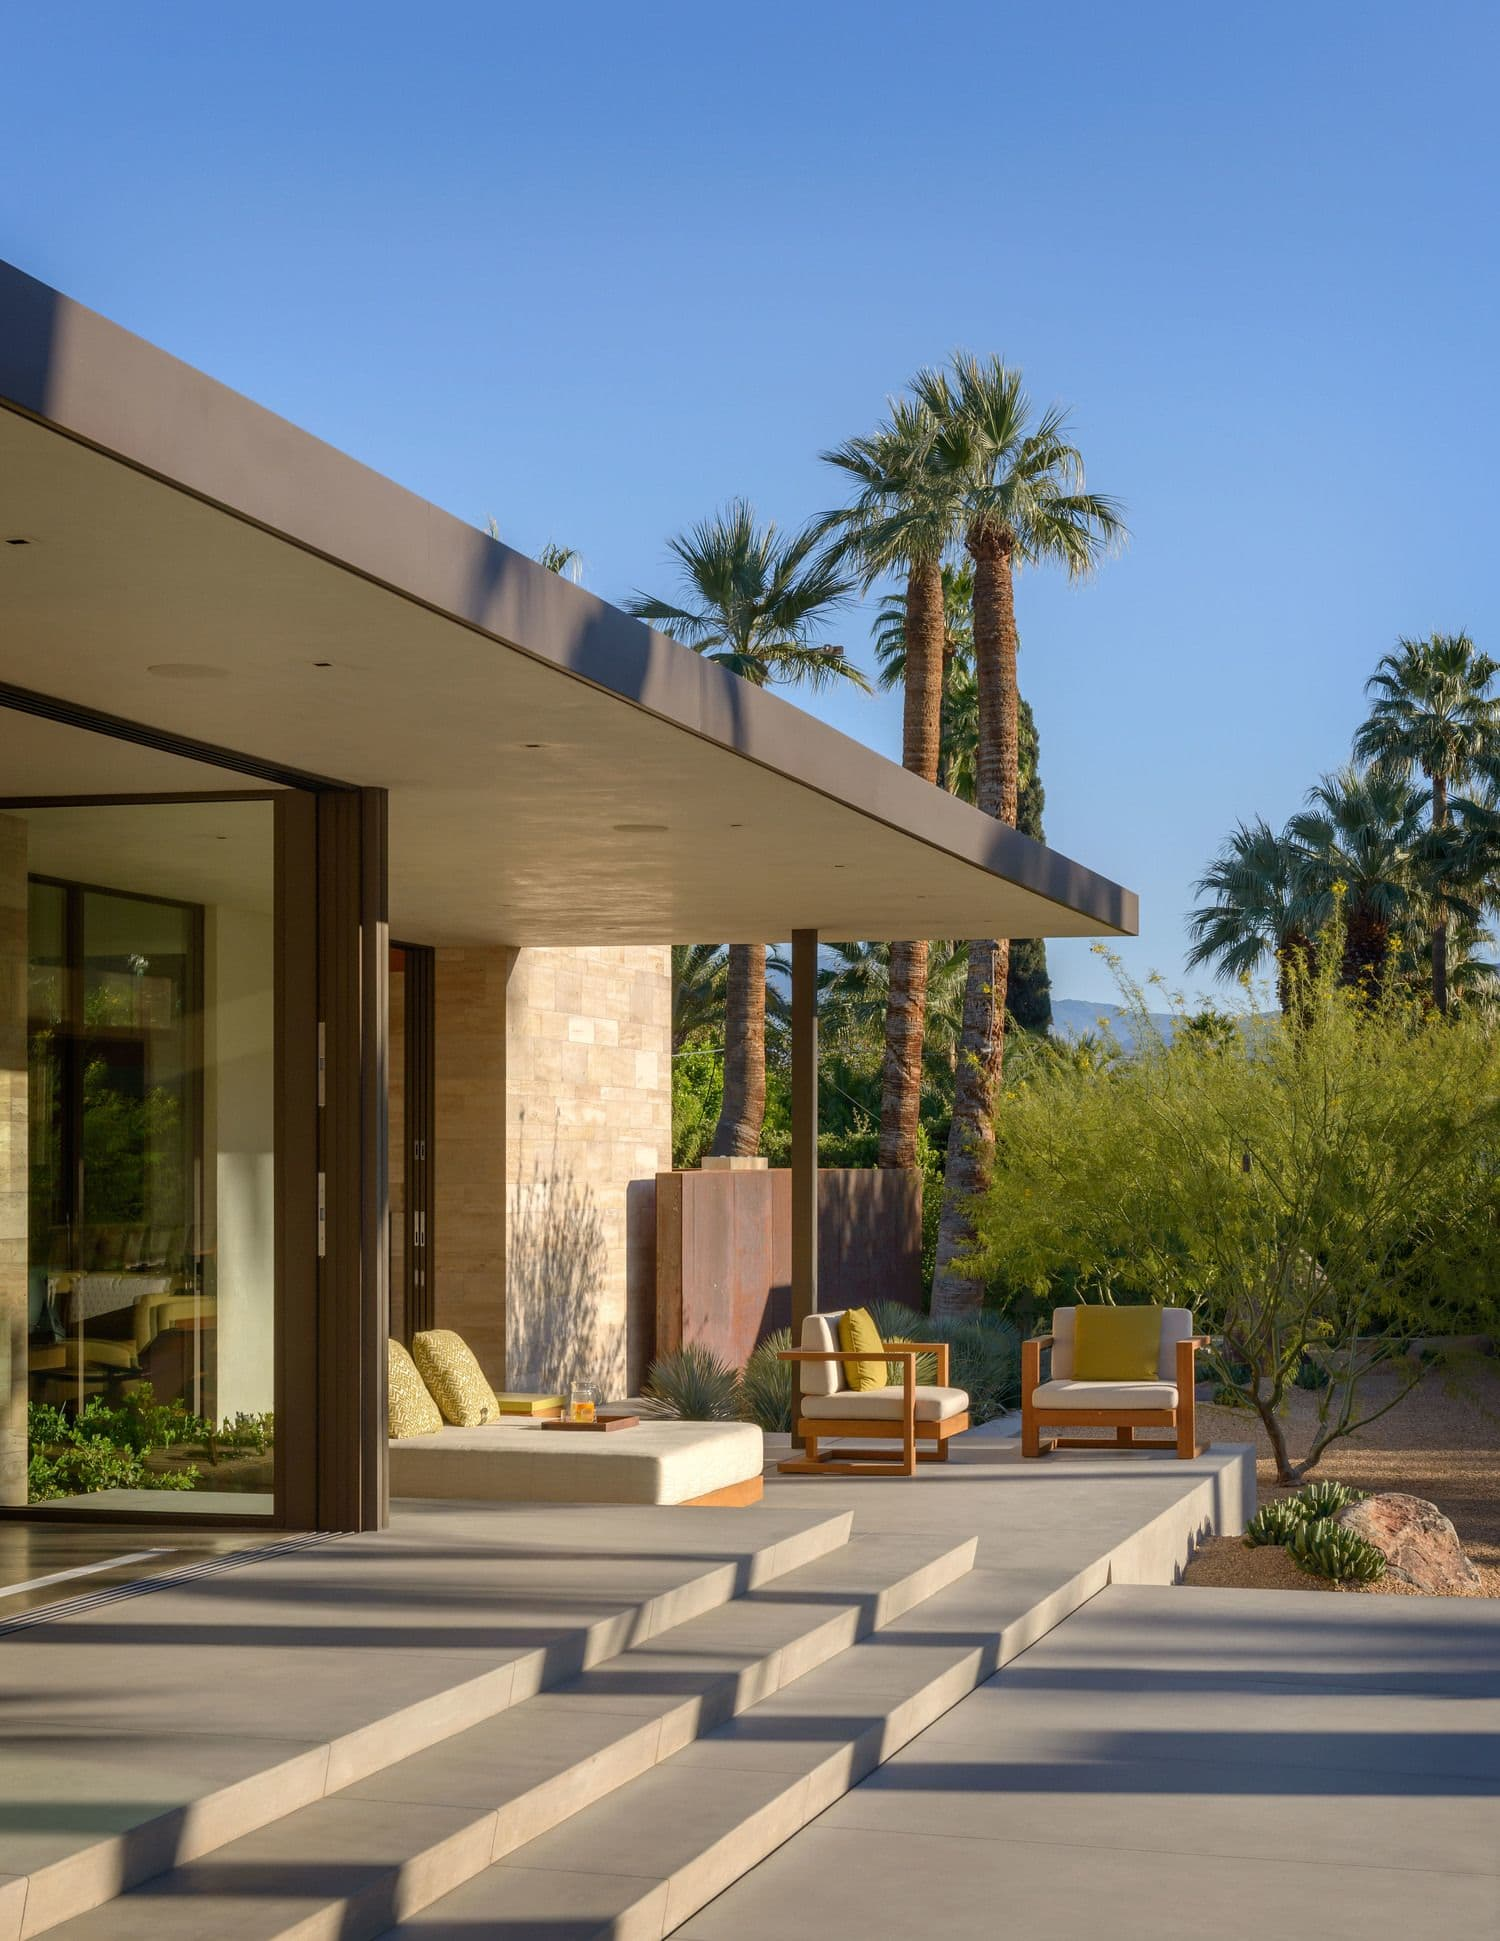 Plants & Landscape by Zeterre Landscape Architecture seen at Private Residence, Palm Springs - Palm Springs Oasis